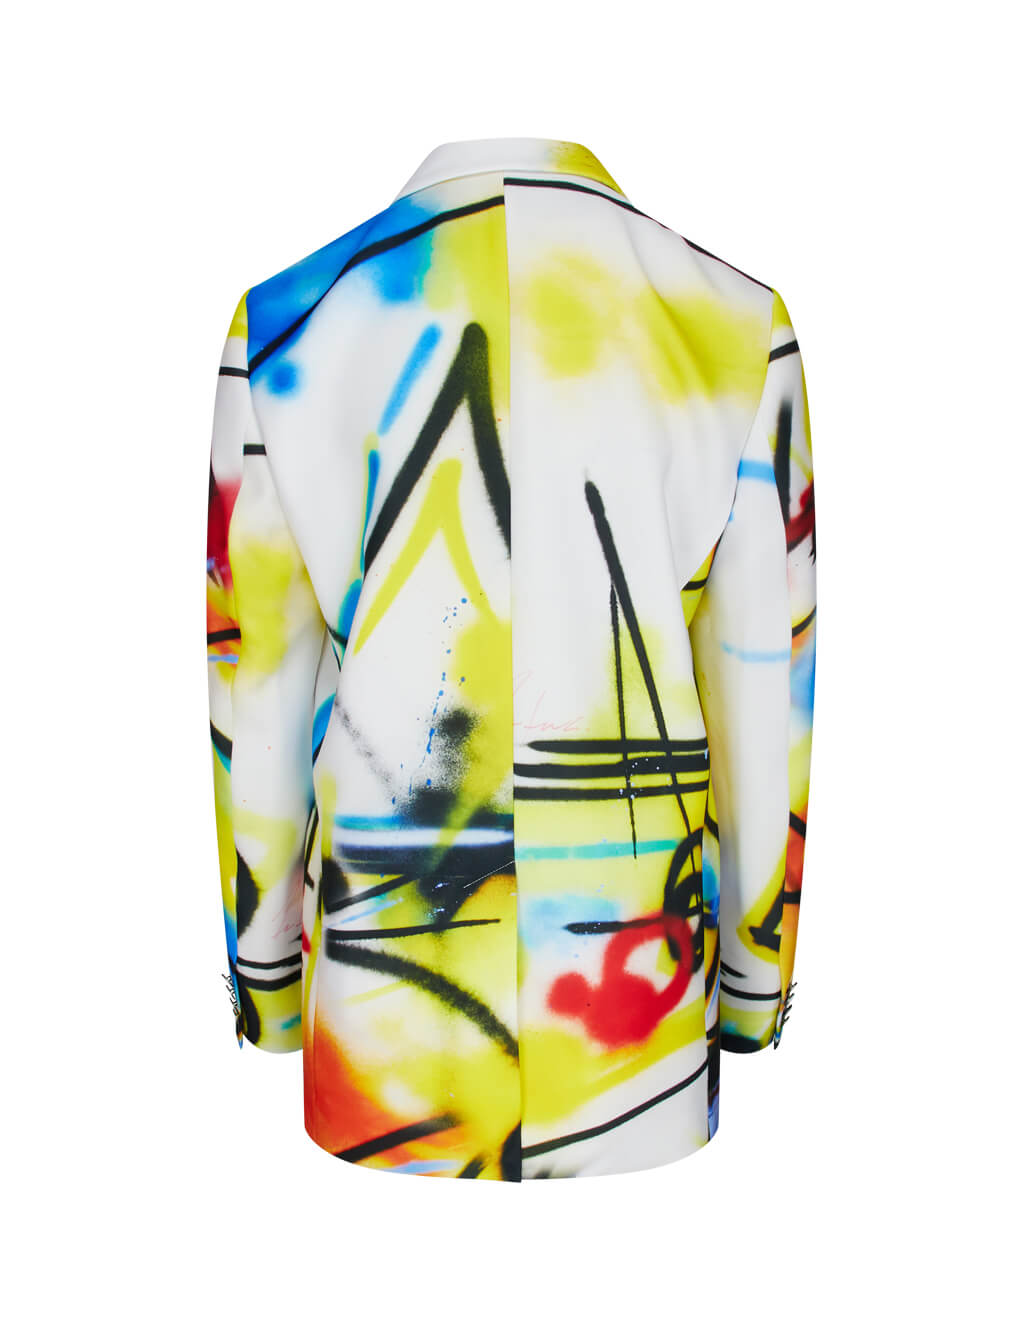 Off-White Women's White Futura Tomboy Jacket OWEF032R20D951079988